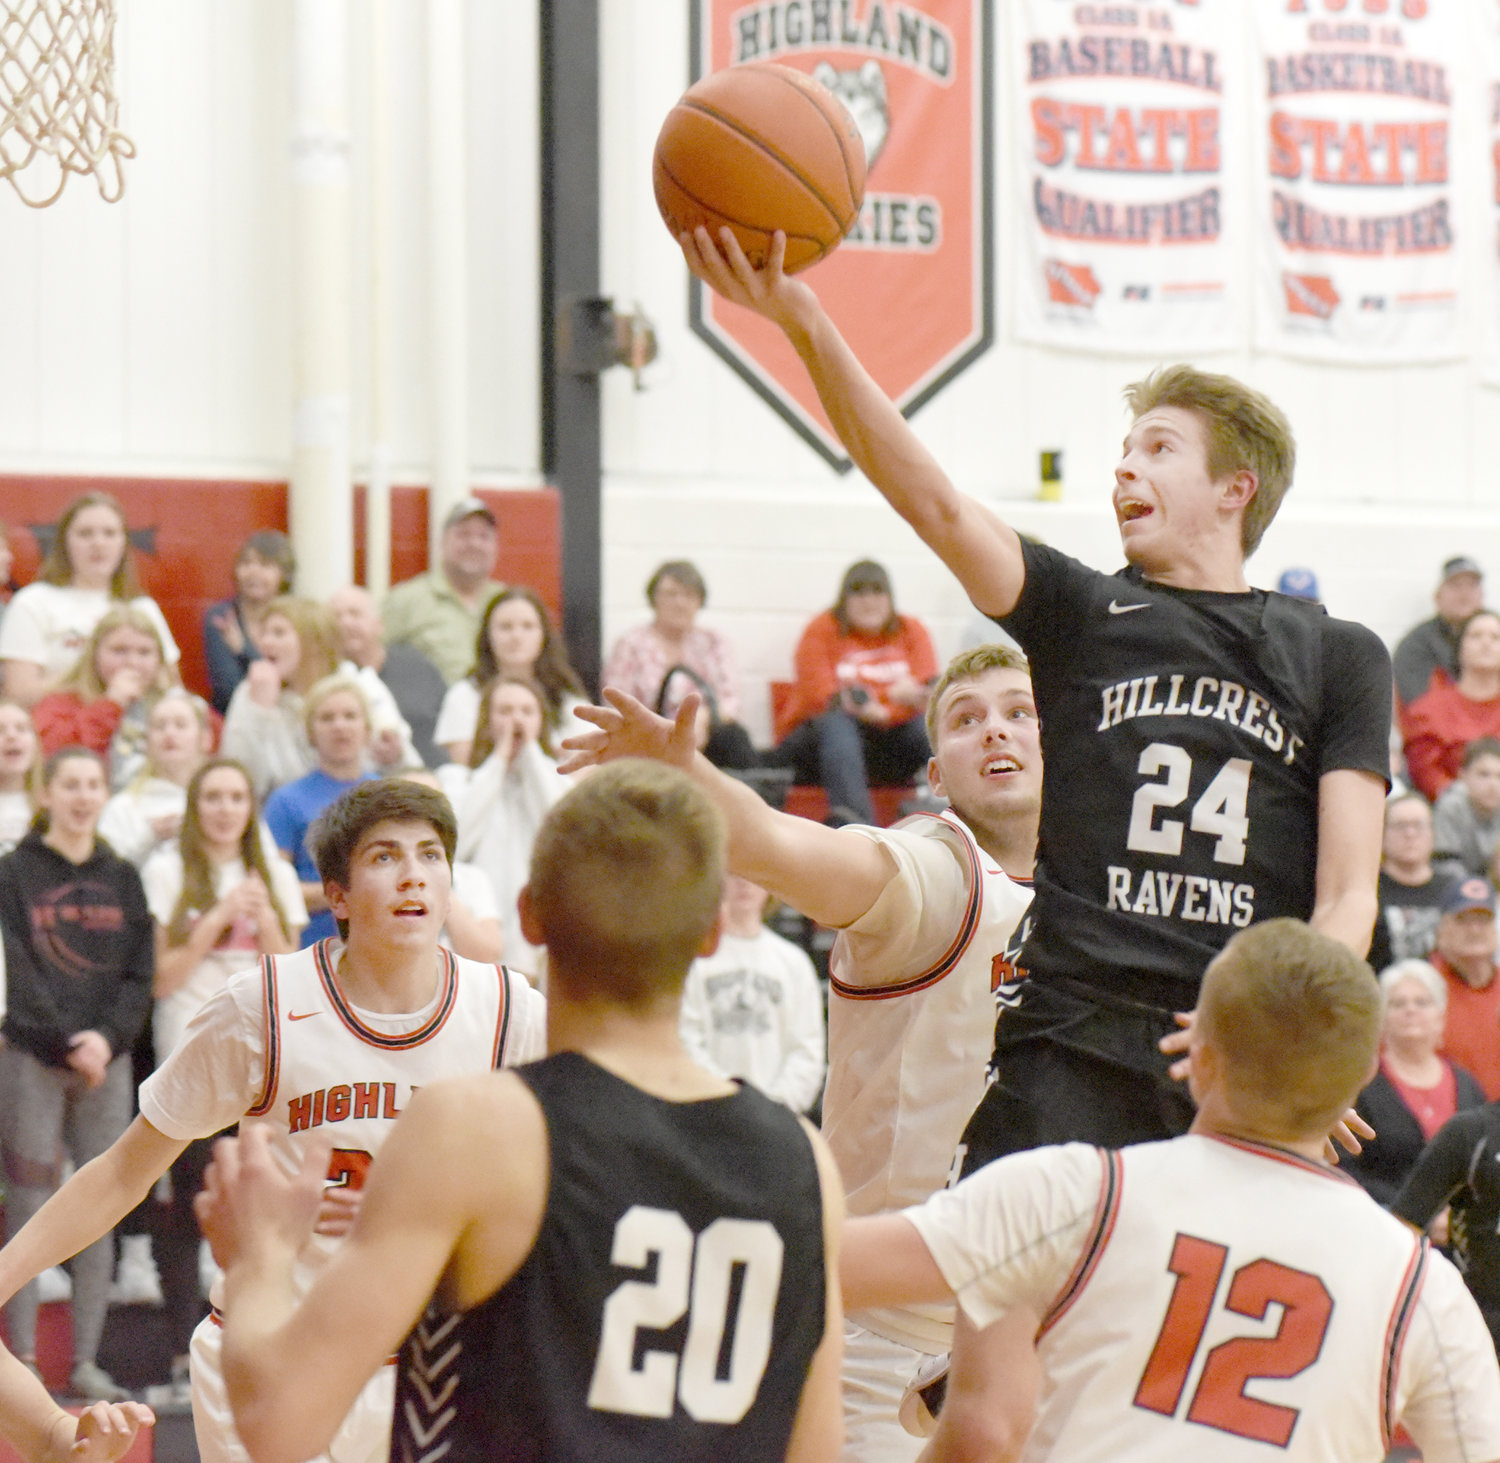 Hillcrest's Kobe Borntrager lays the ball up for a basket against Highland Feb. 20.